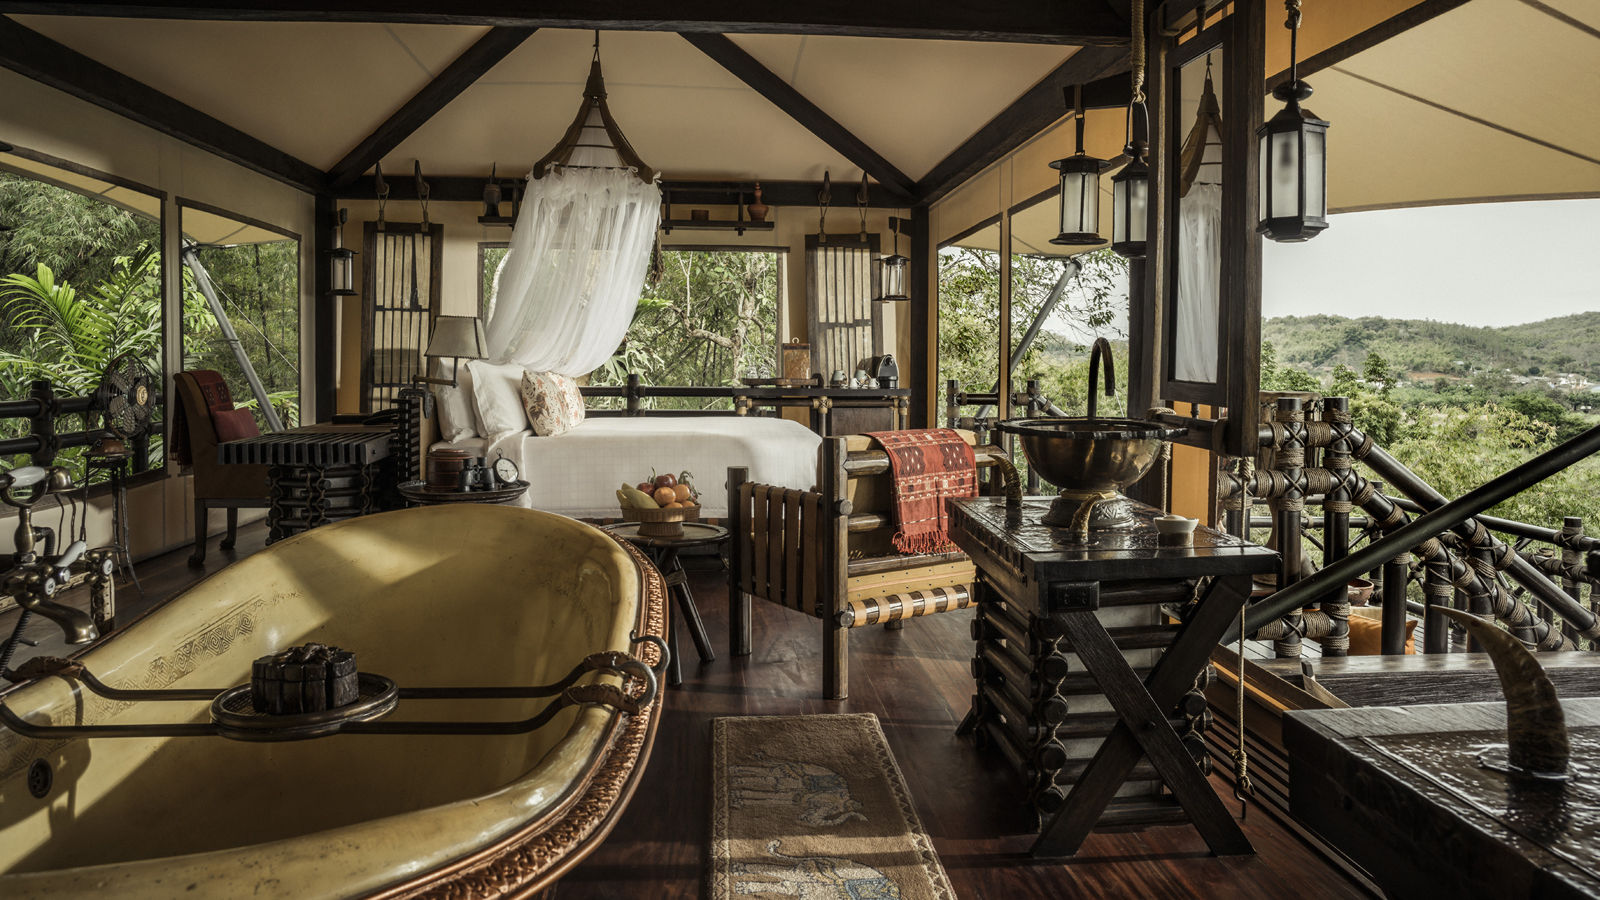 Enjoy Our Multiple Destination Packages Offered at Four Seasons Tented Camp Golden Triangle, a Luxury Tented Camp in the Golden Triangle, Thailand